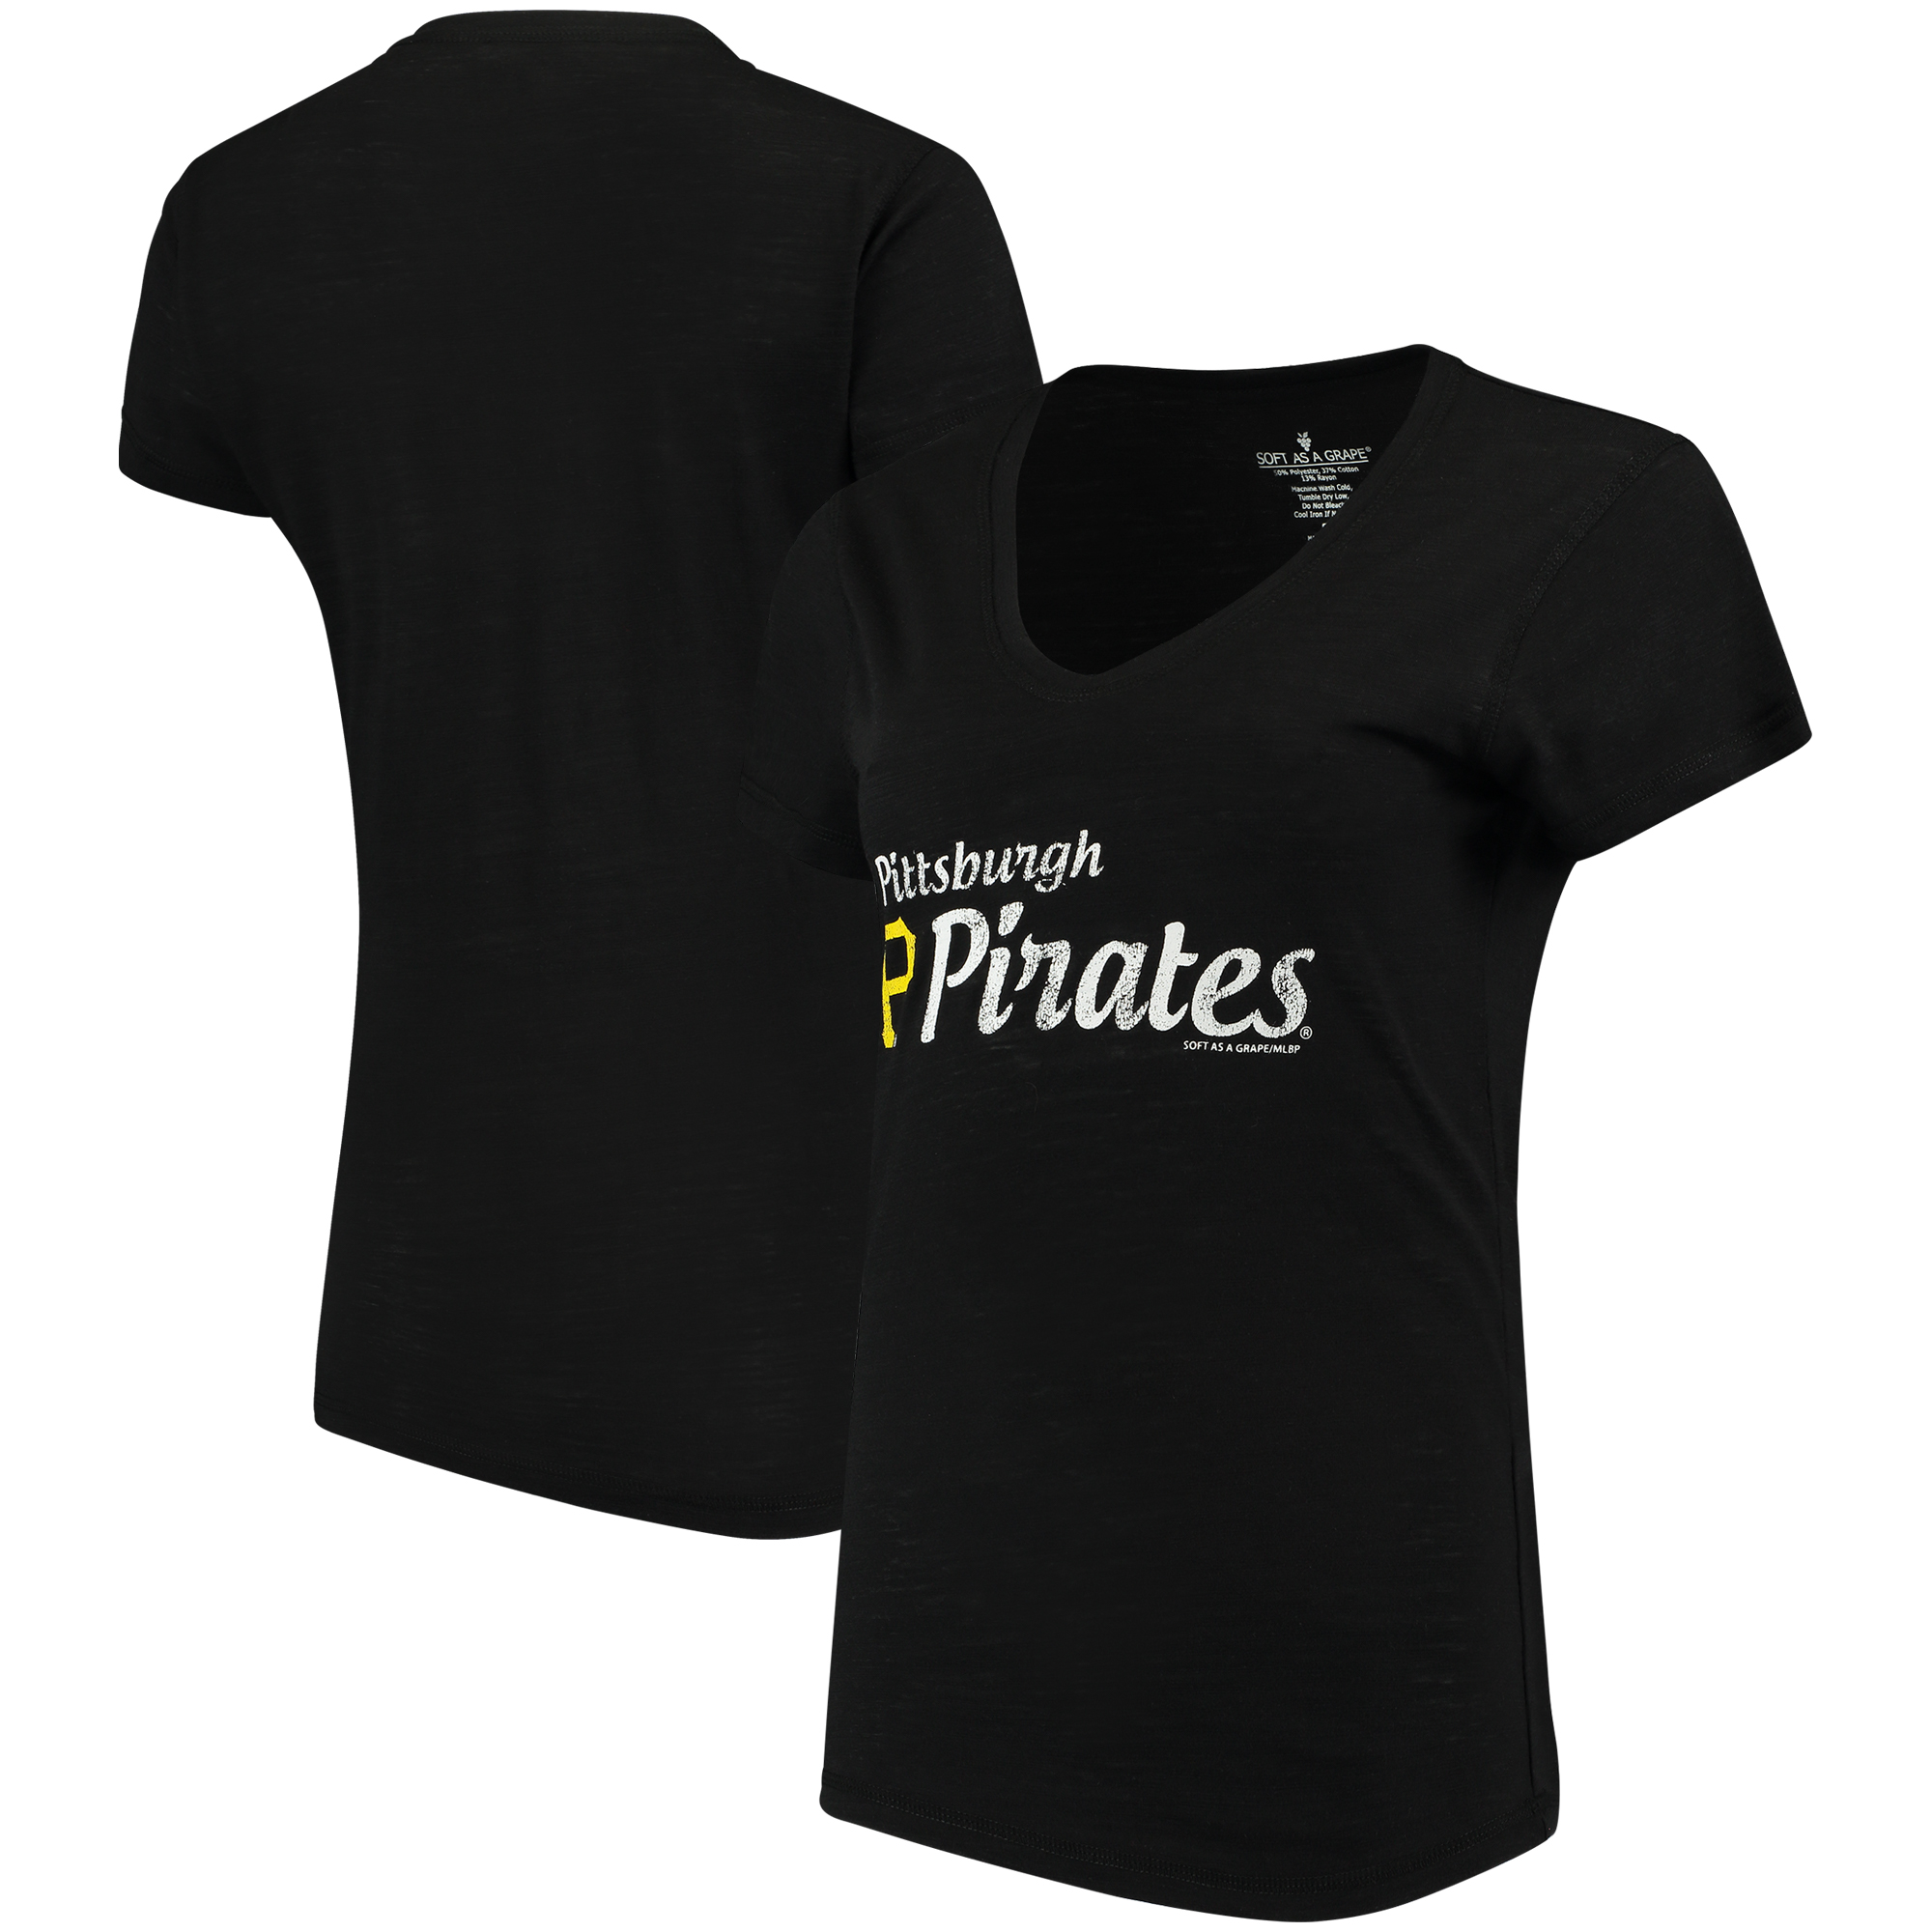 Pittsburgh Pirates Soft As A Grape Women's Double Steal Tri-Blend V-Neck T-Shirt - Black